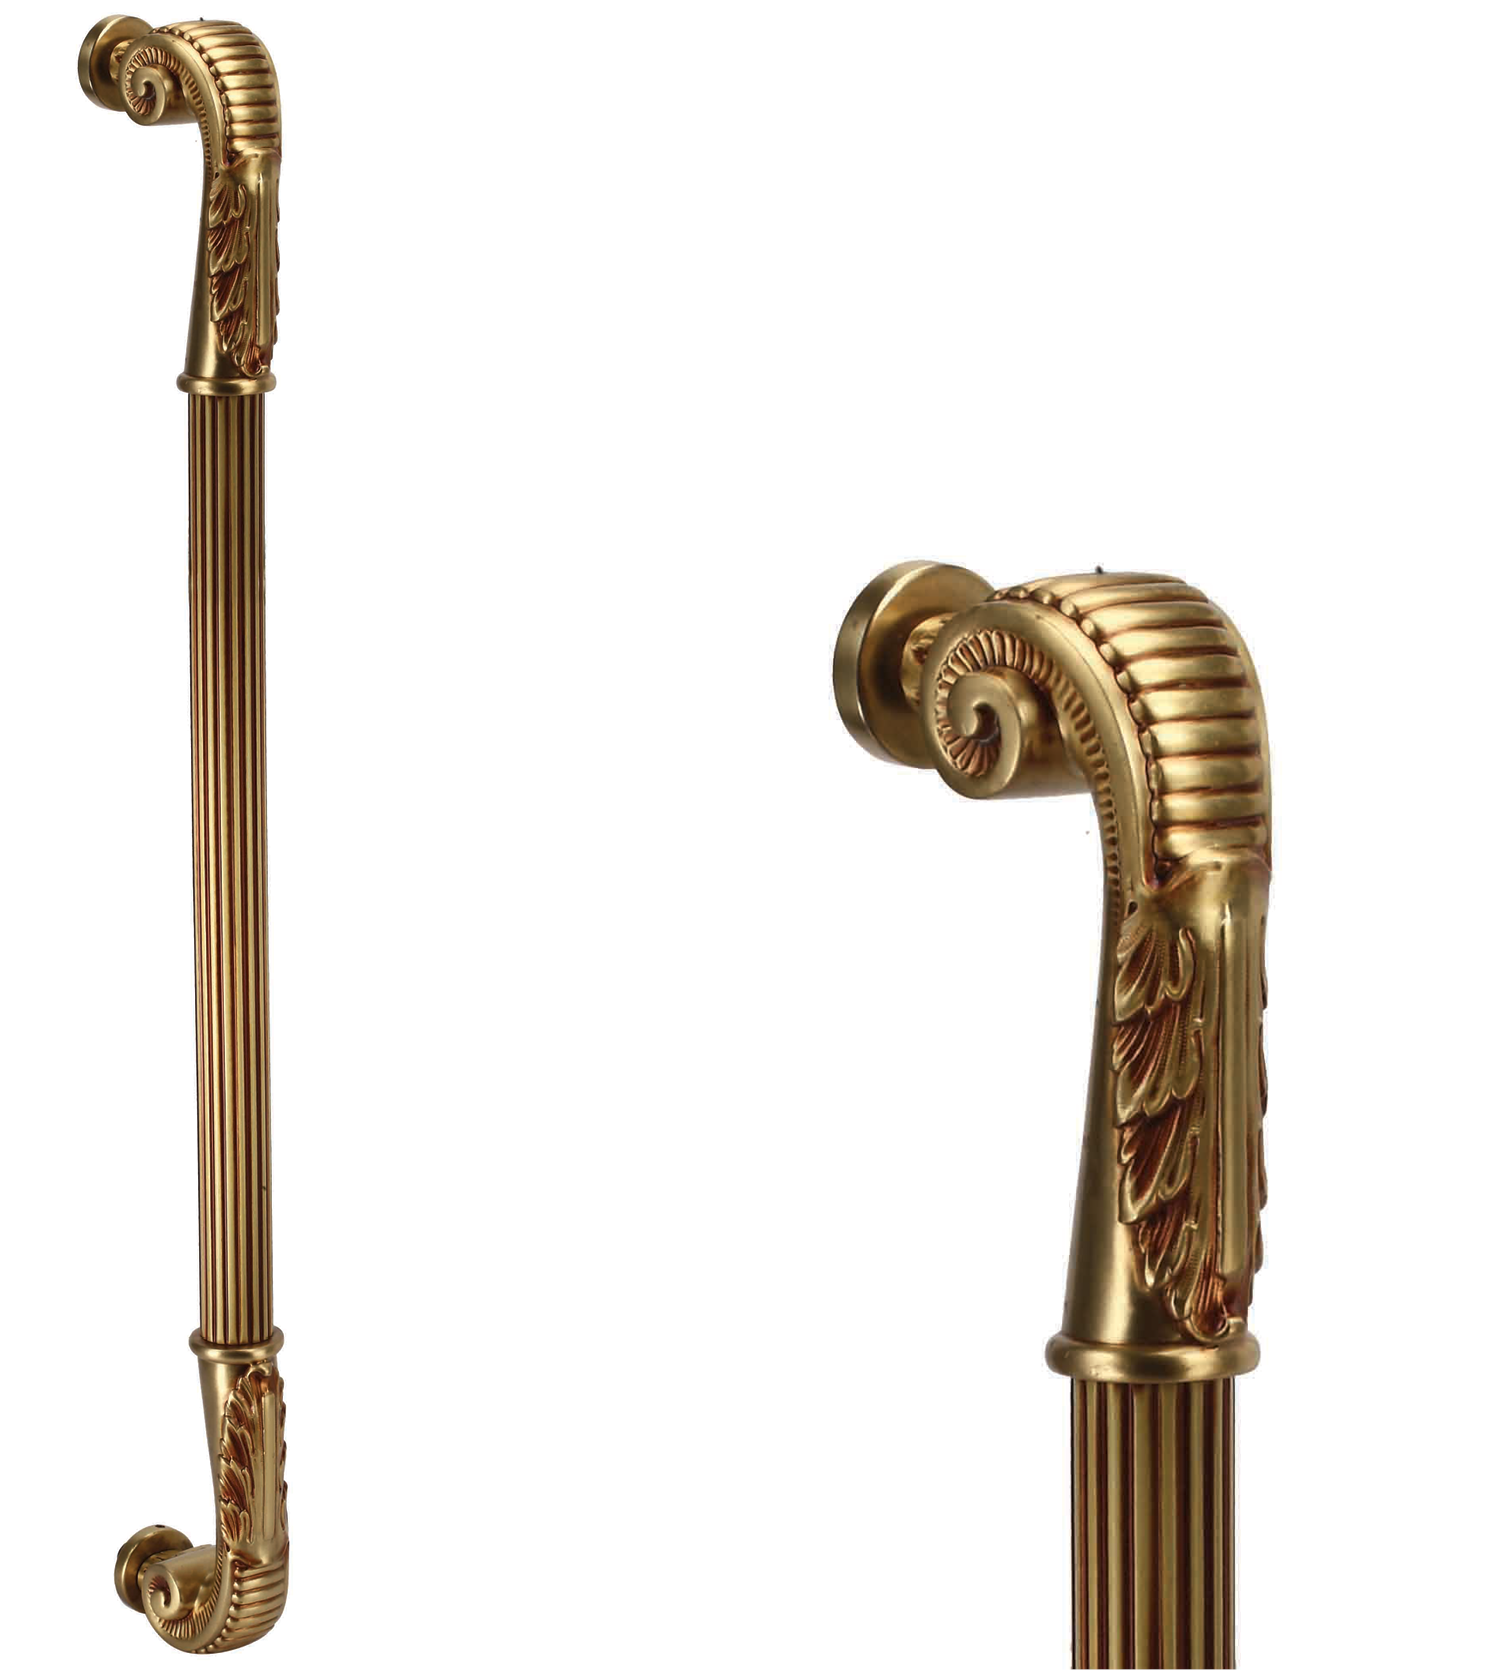 Indian main door pull handle and locks for glass and wooden doors  for resorts